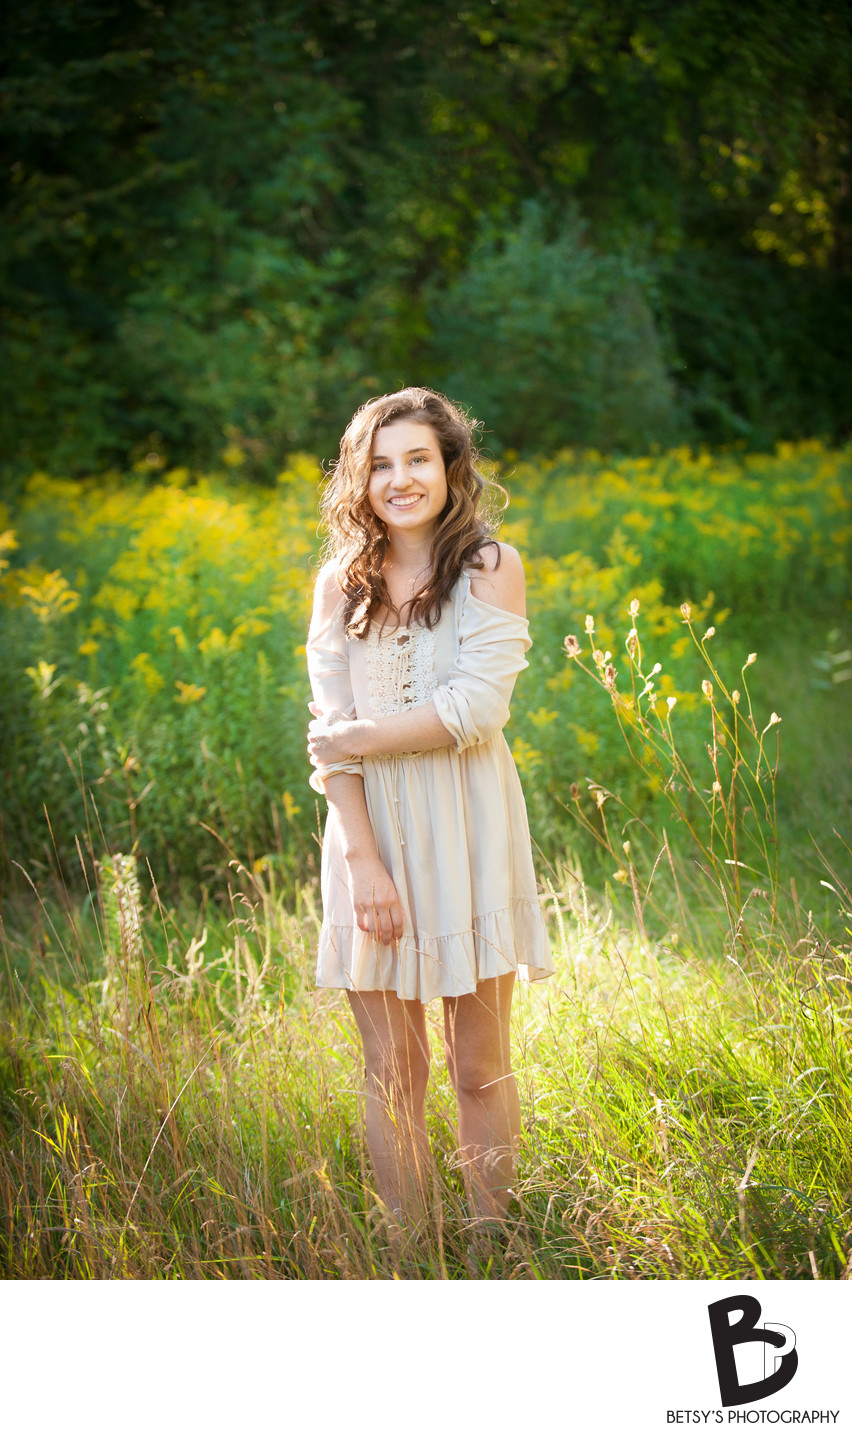 Senior Portrait in a Grassy Field (Nature Preserve)